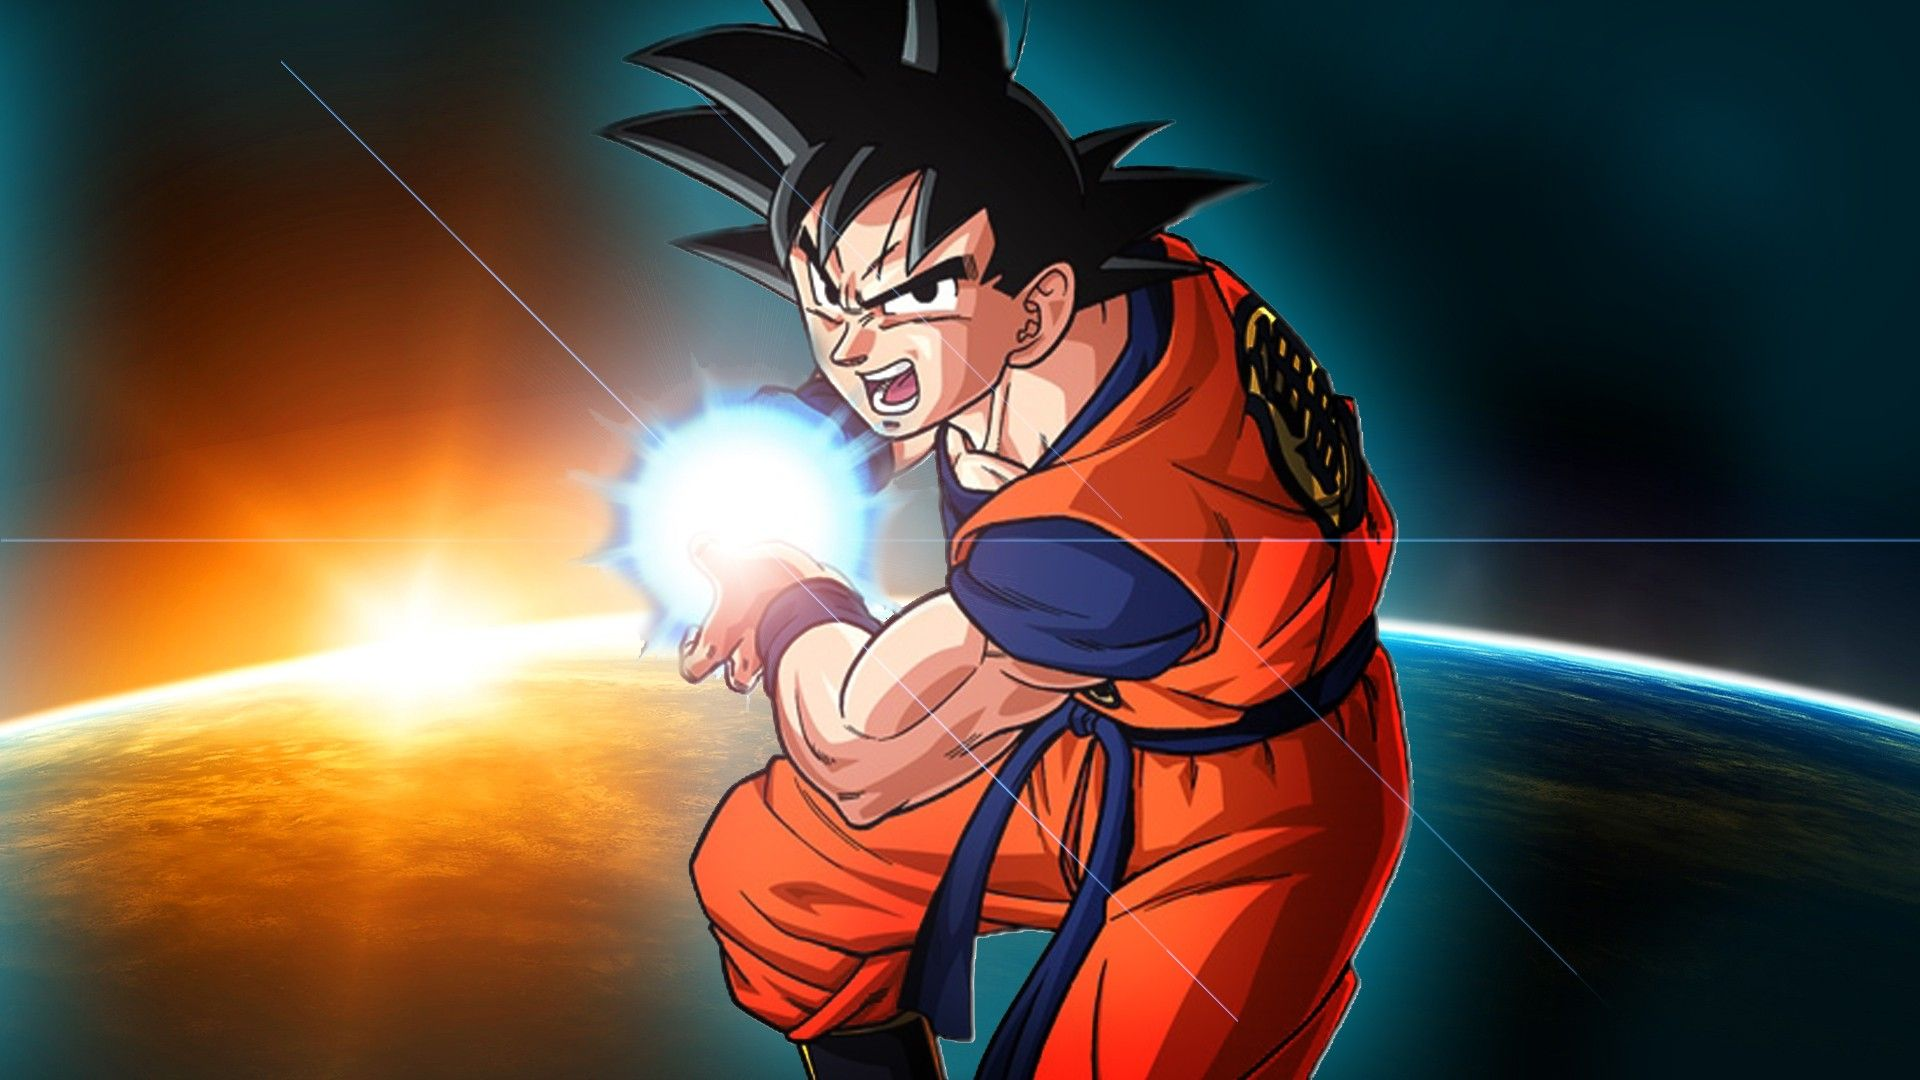 Dbz wallpaper hd goku 1024 768 dragon ball z 3d wallpapers - 3d wallpaper of dragon ball z ...